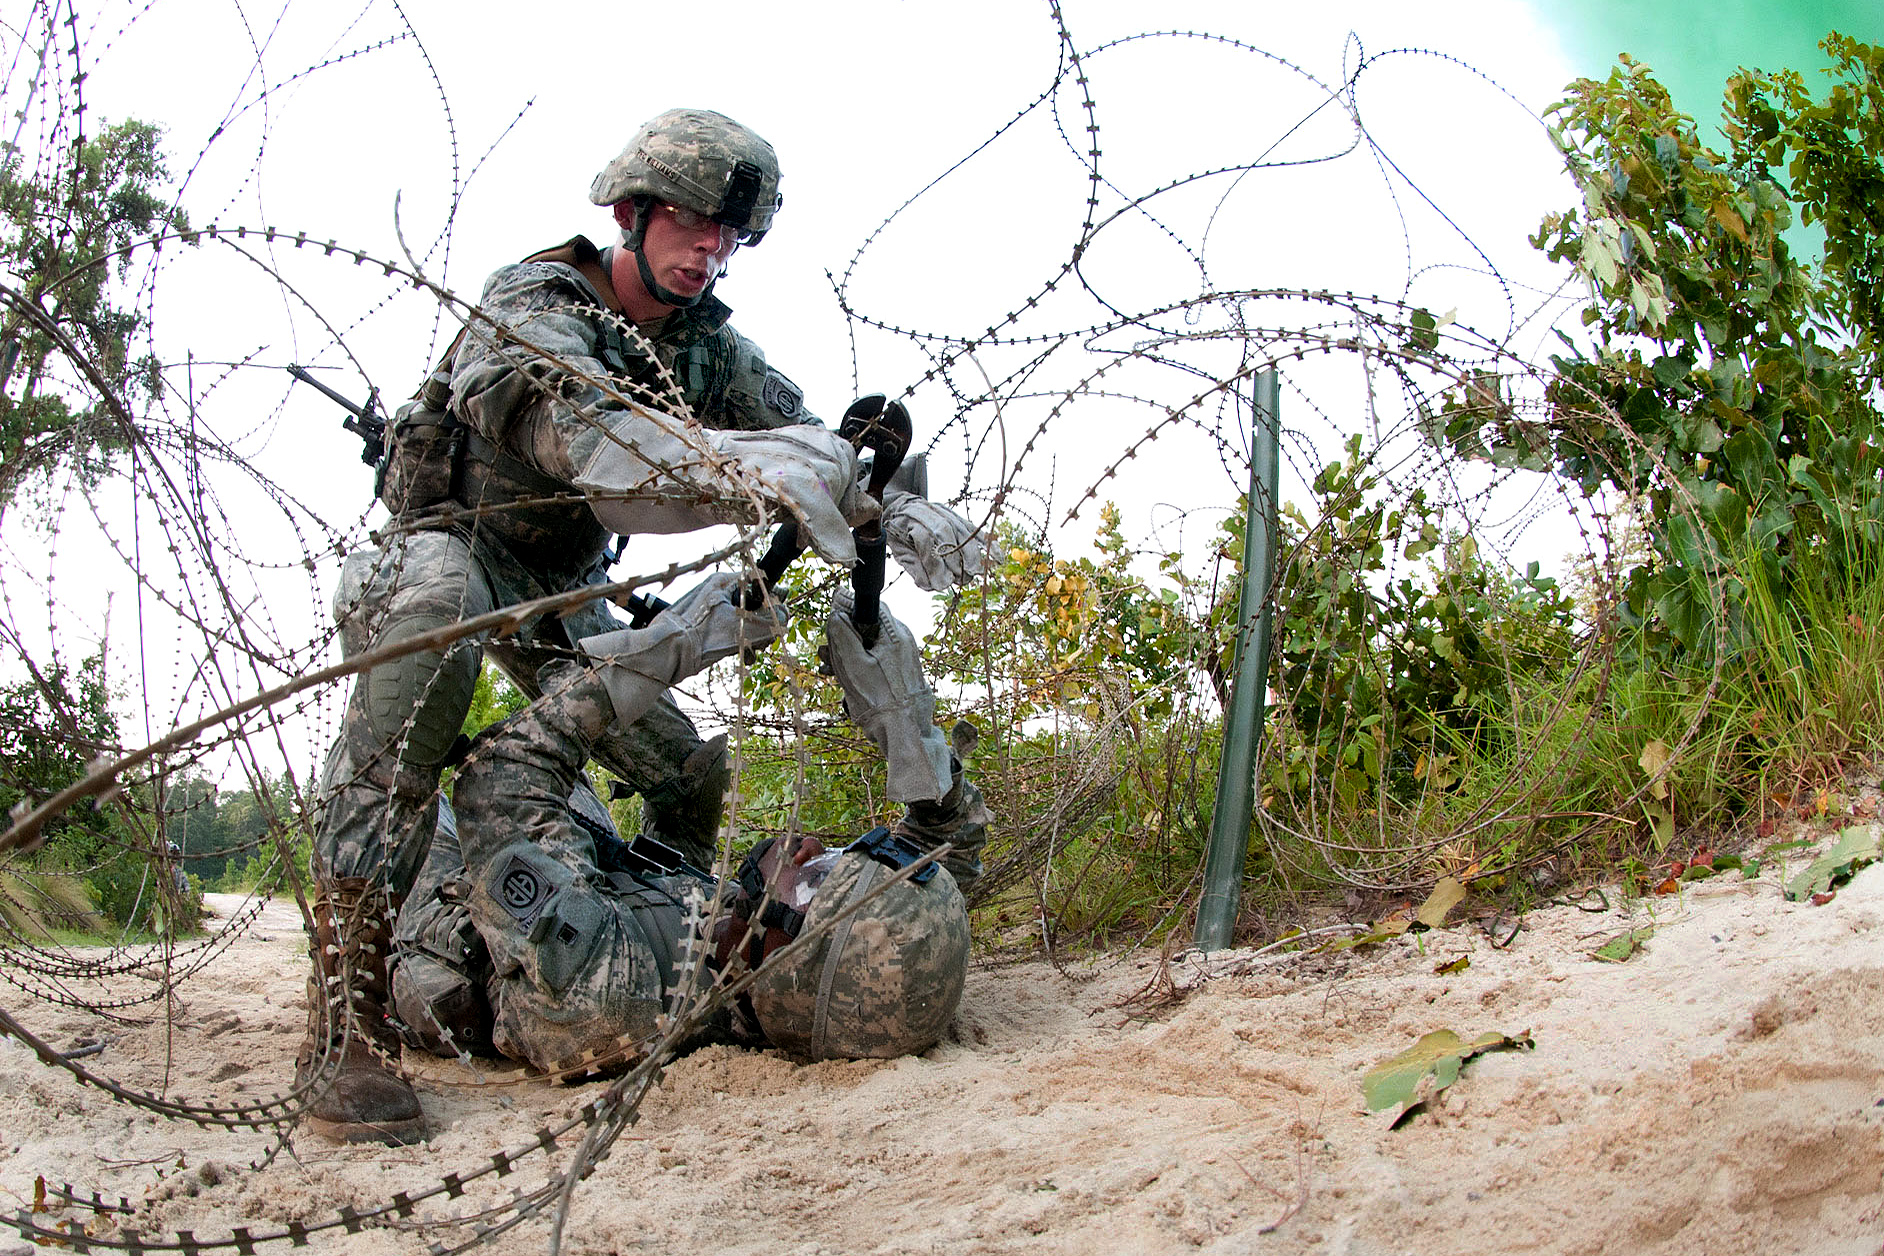 army combat engineers cut through a wire obstacle during a live fire training exercise on